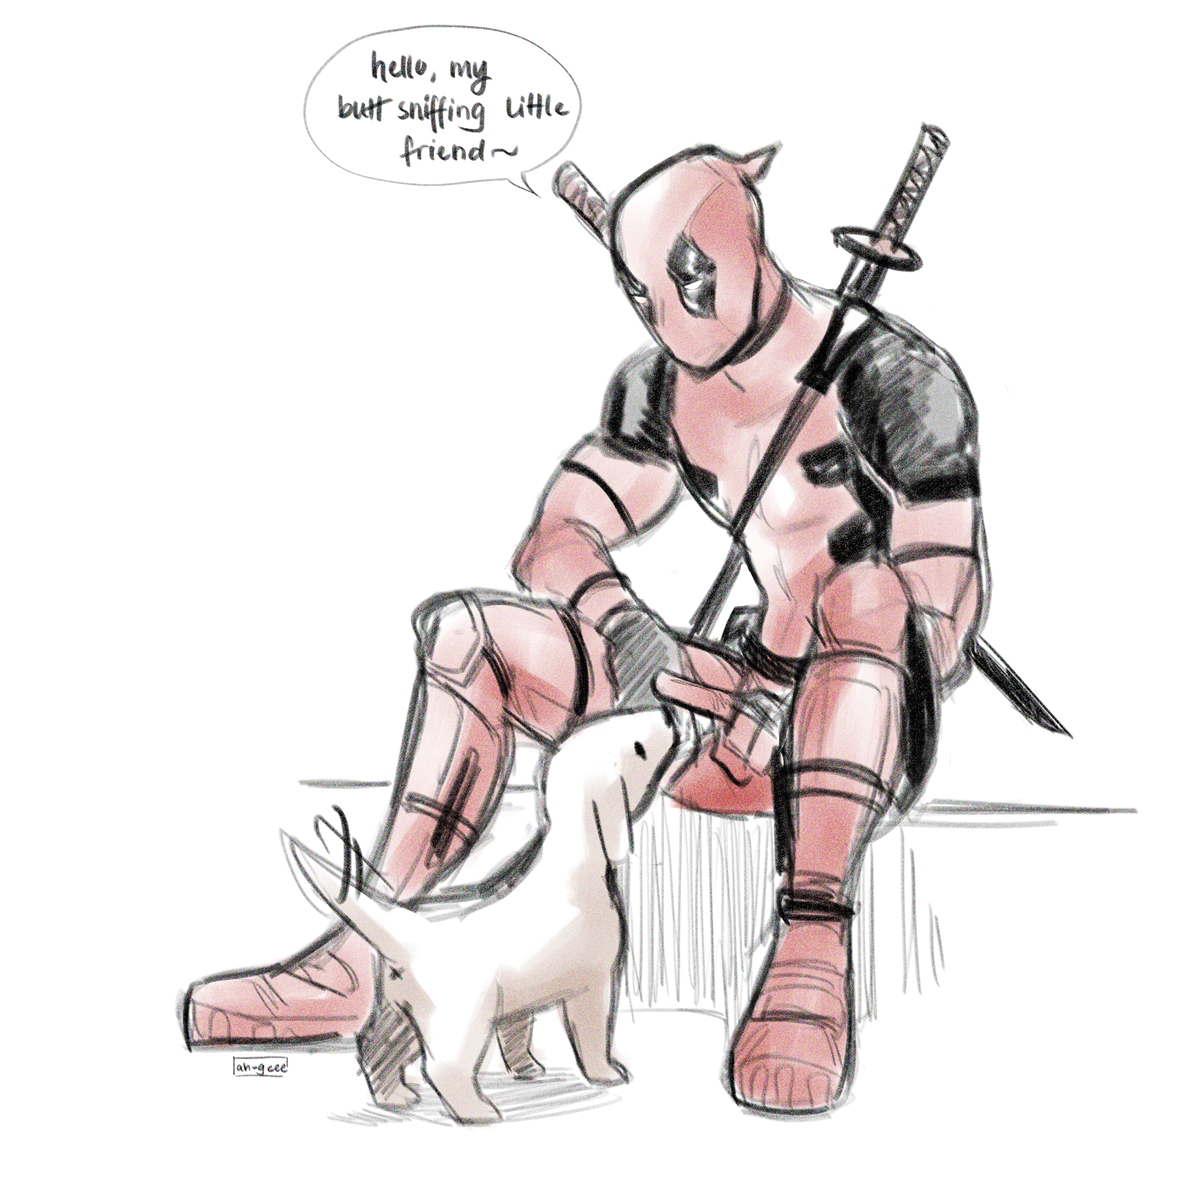 he found a pupper and named it R.D., short for Rotten Diaper, because that's what it smelled like #Deadpool pic.twitter.com/mpw2ZRoVtW